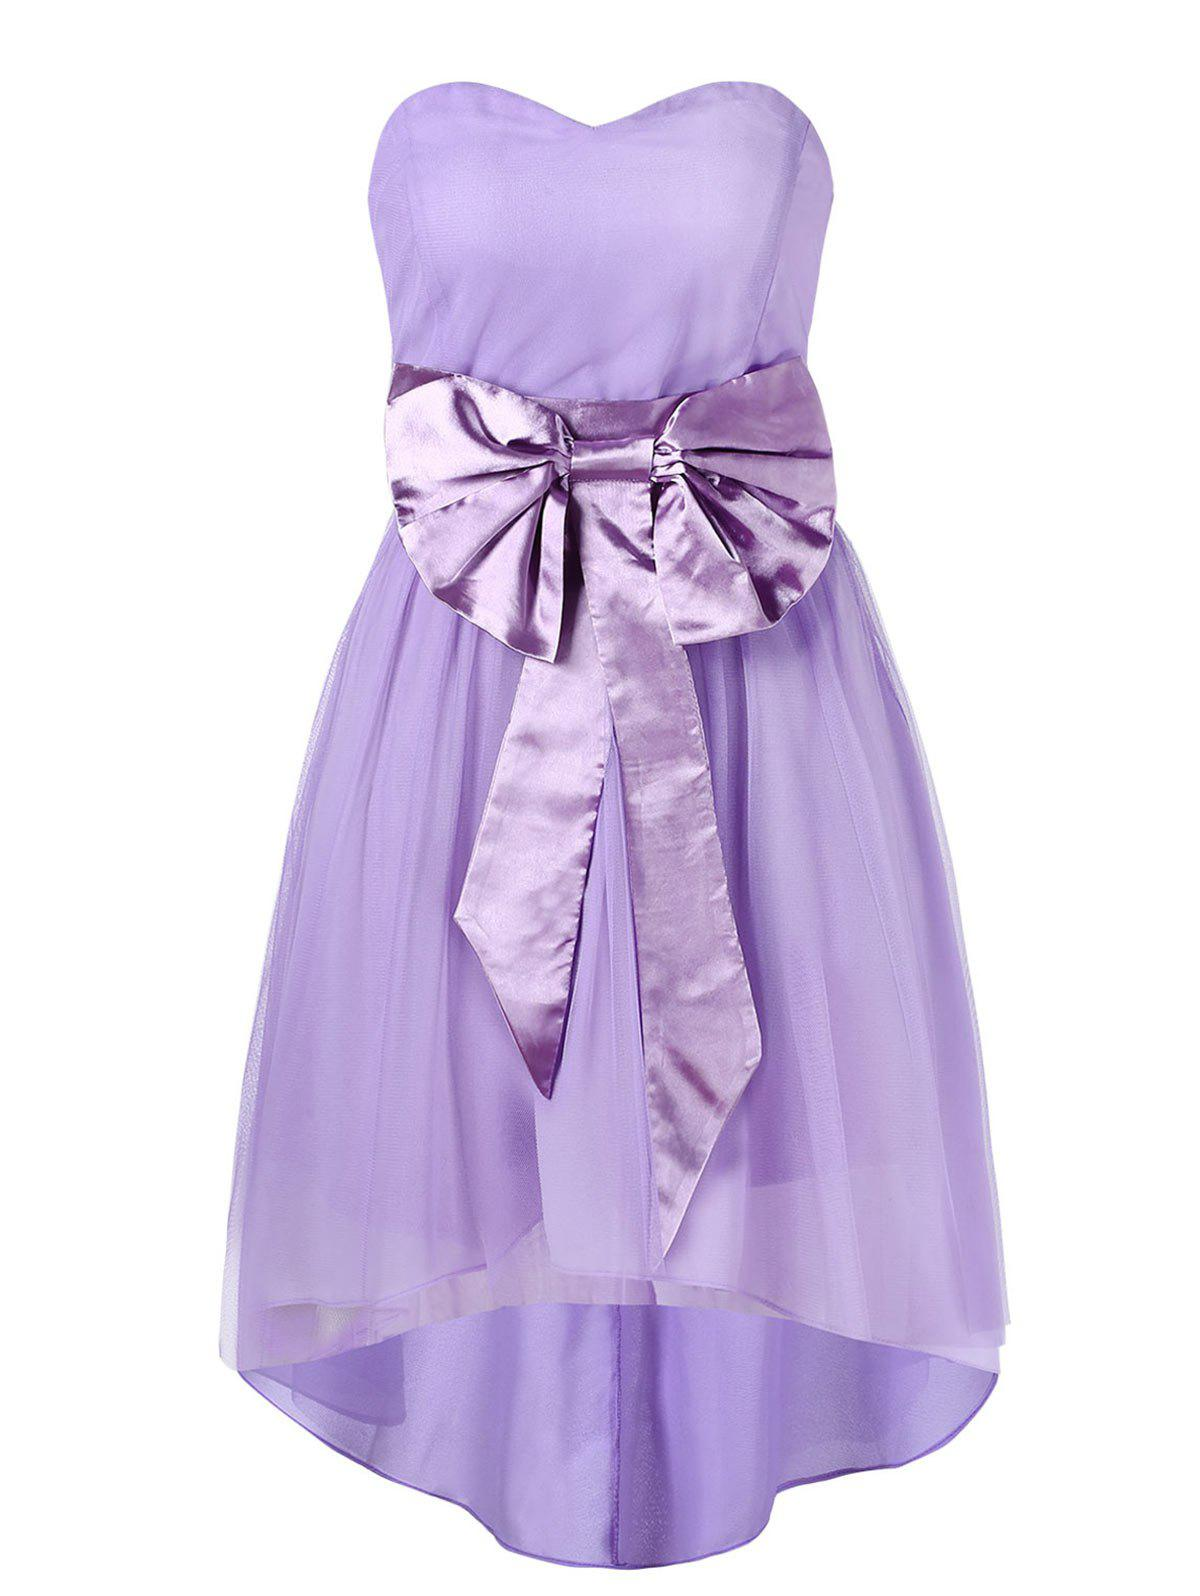 Buy Sweetheart Neckline Bowknot Sash High Low Mesh Cocktail Dress